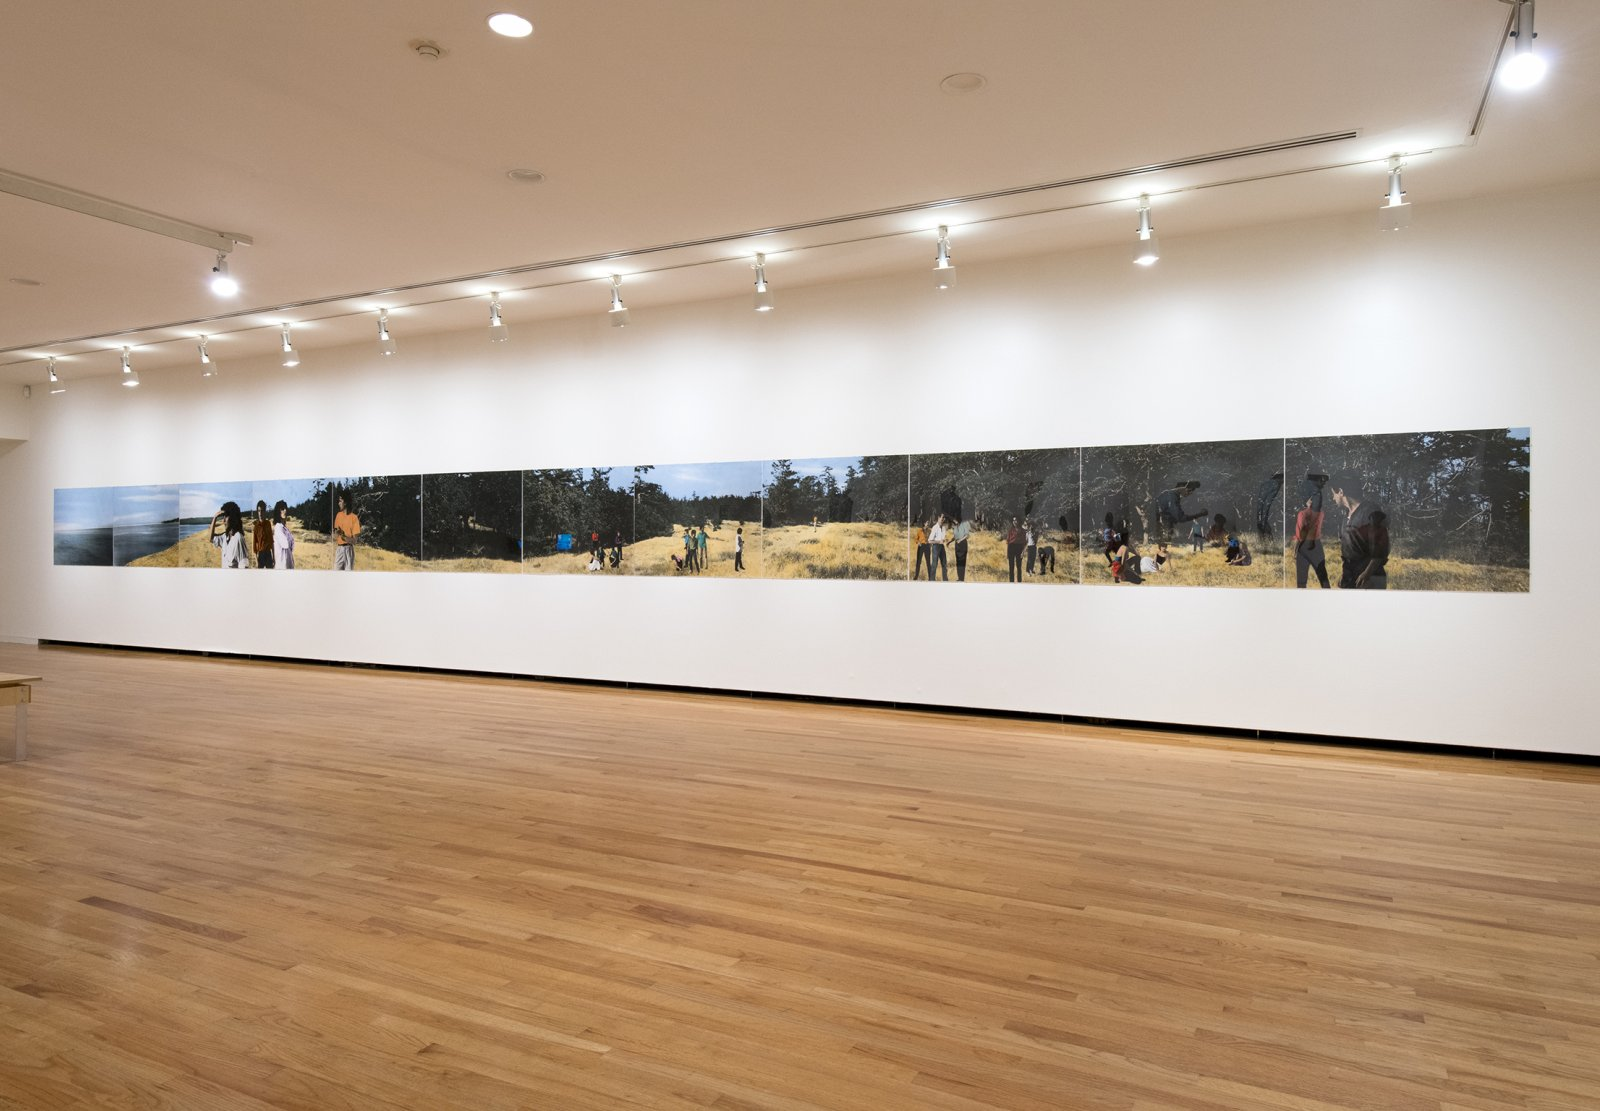 Ian Wallace, Lookout, 1979, 12 hand-coloured silver gelatin prints, 36 x 576 in. (92 x 1464 cm). Installation view, A Literature of Images, Vancouver Art Gallery, 2012 by Ian Wallace